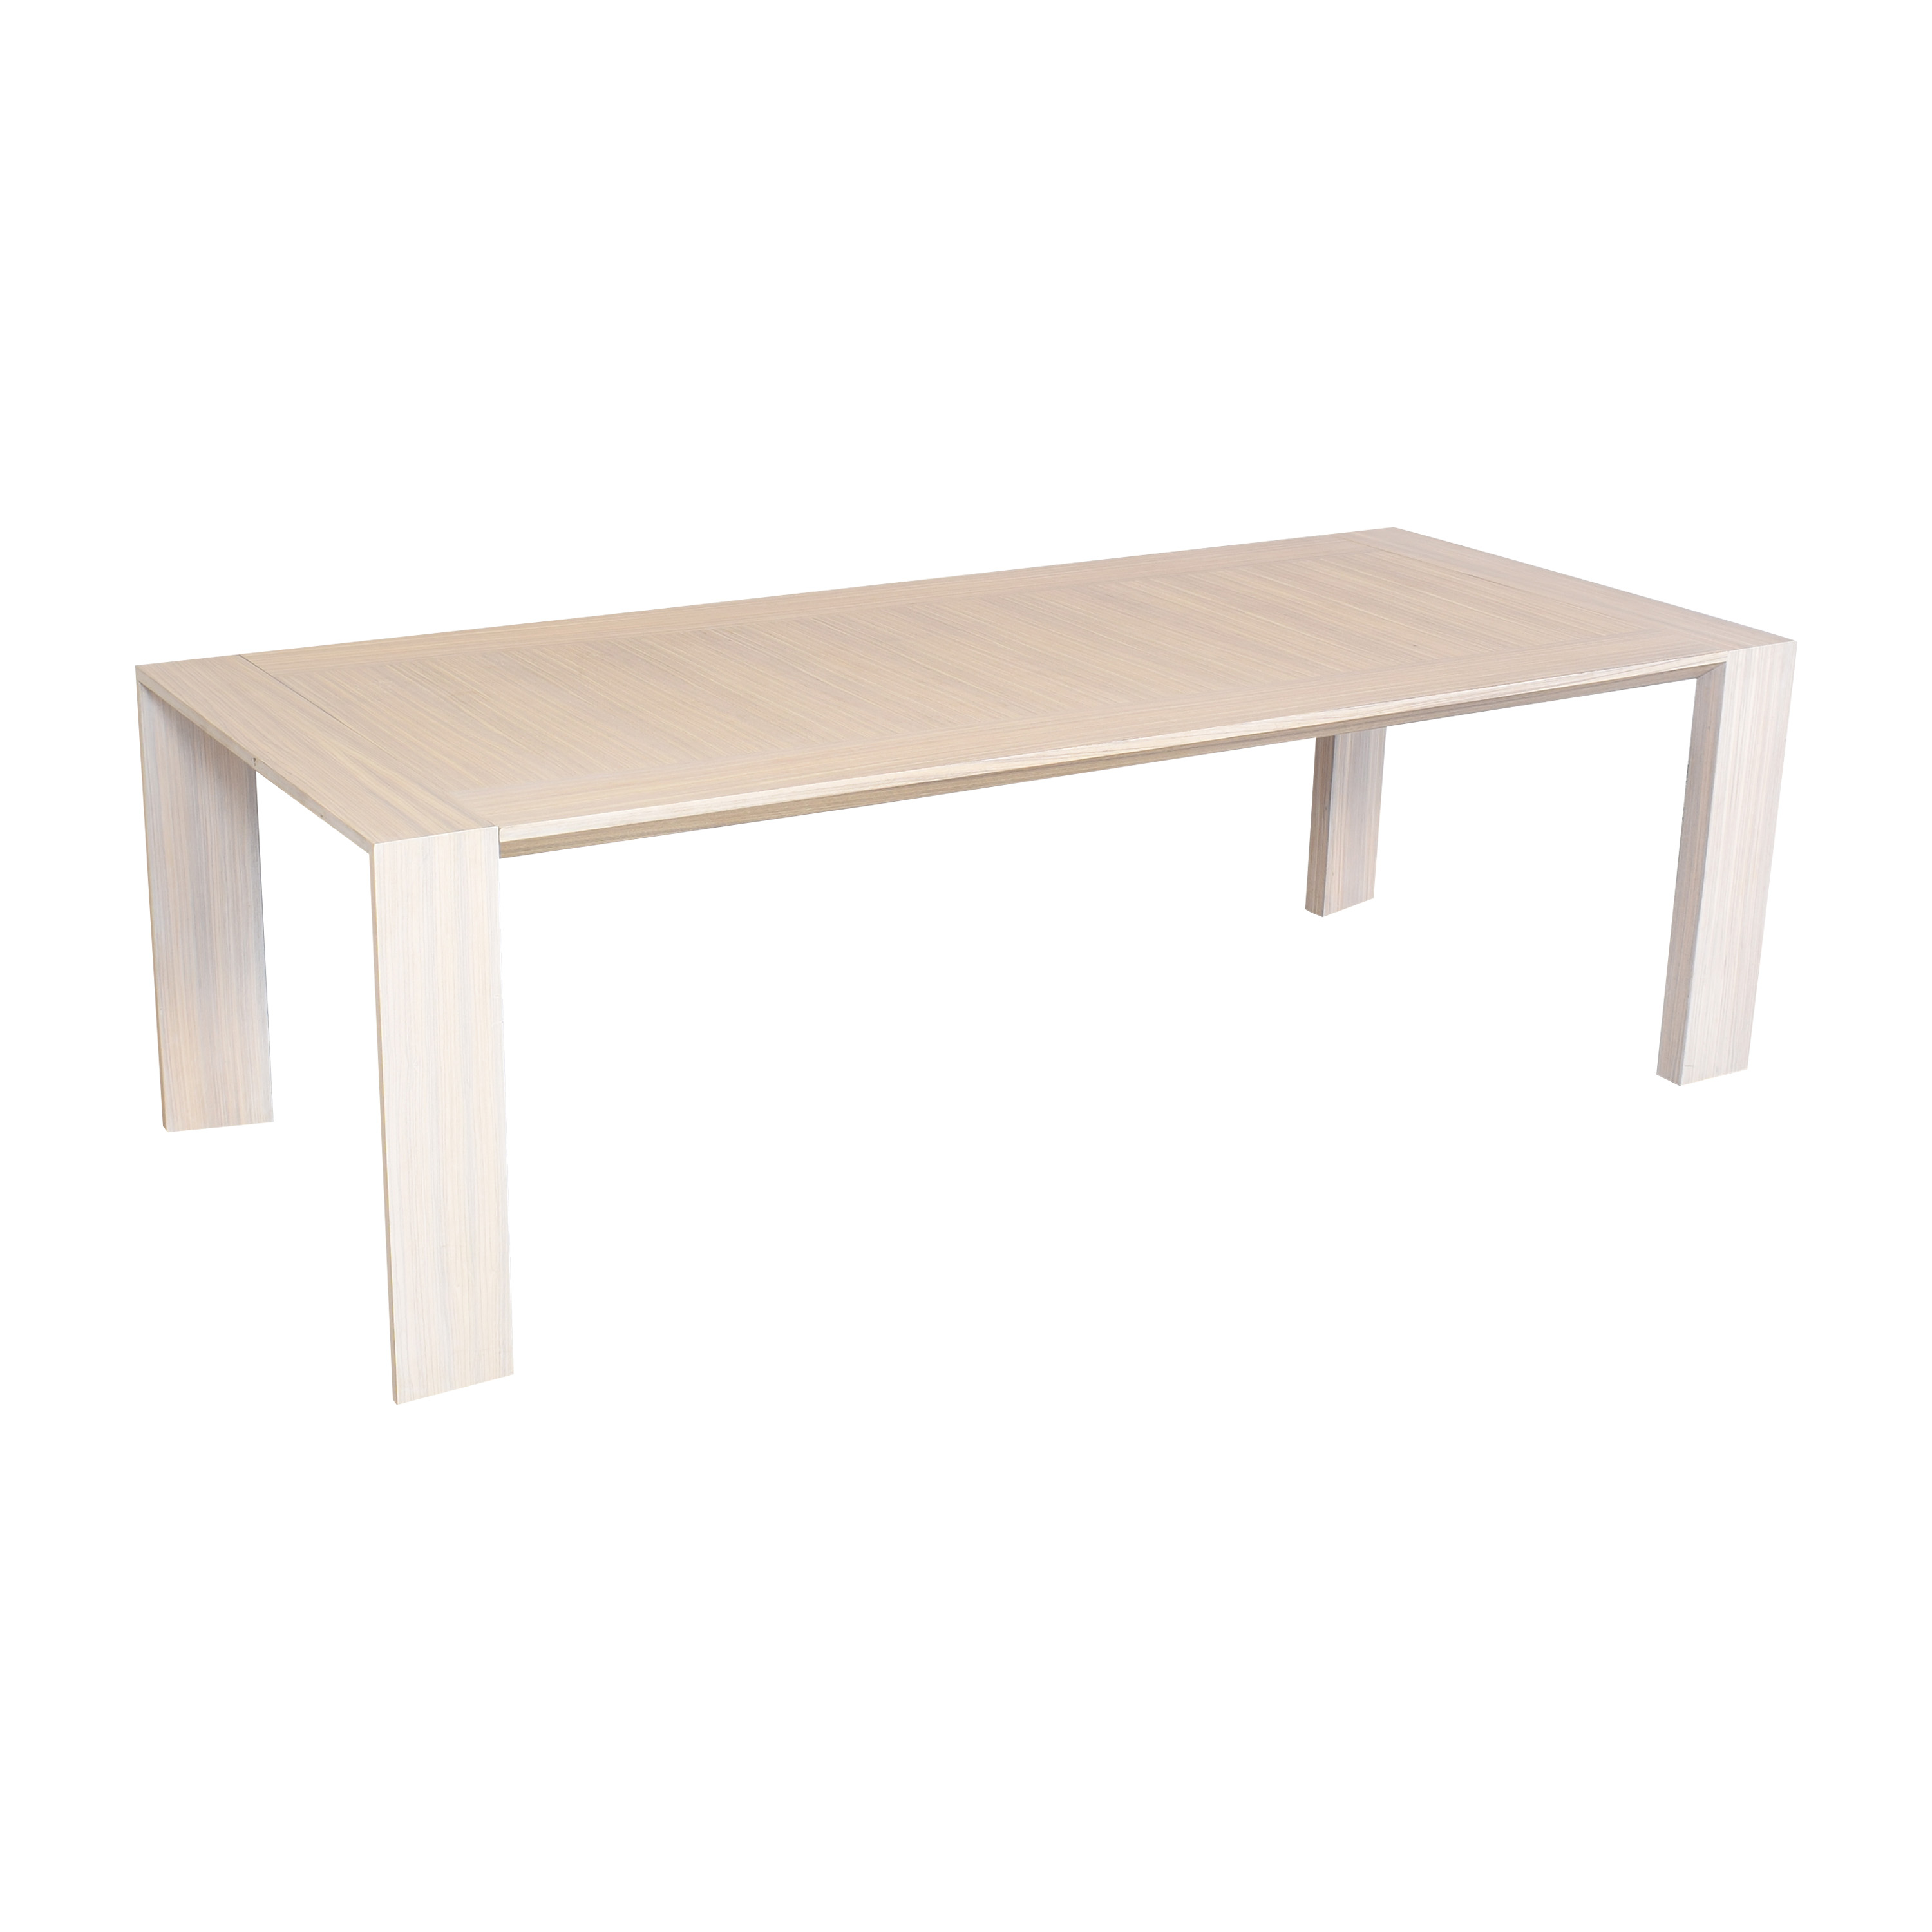 buy Cite NYC Cecchini Rectangular Dining Table Cite NYC Dinner Tables